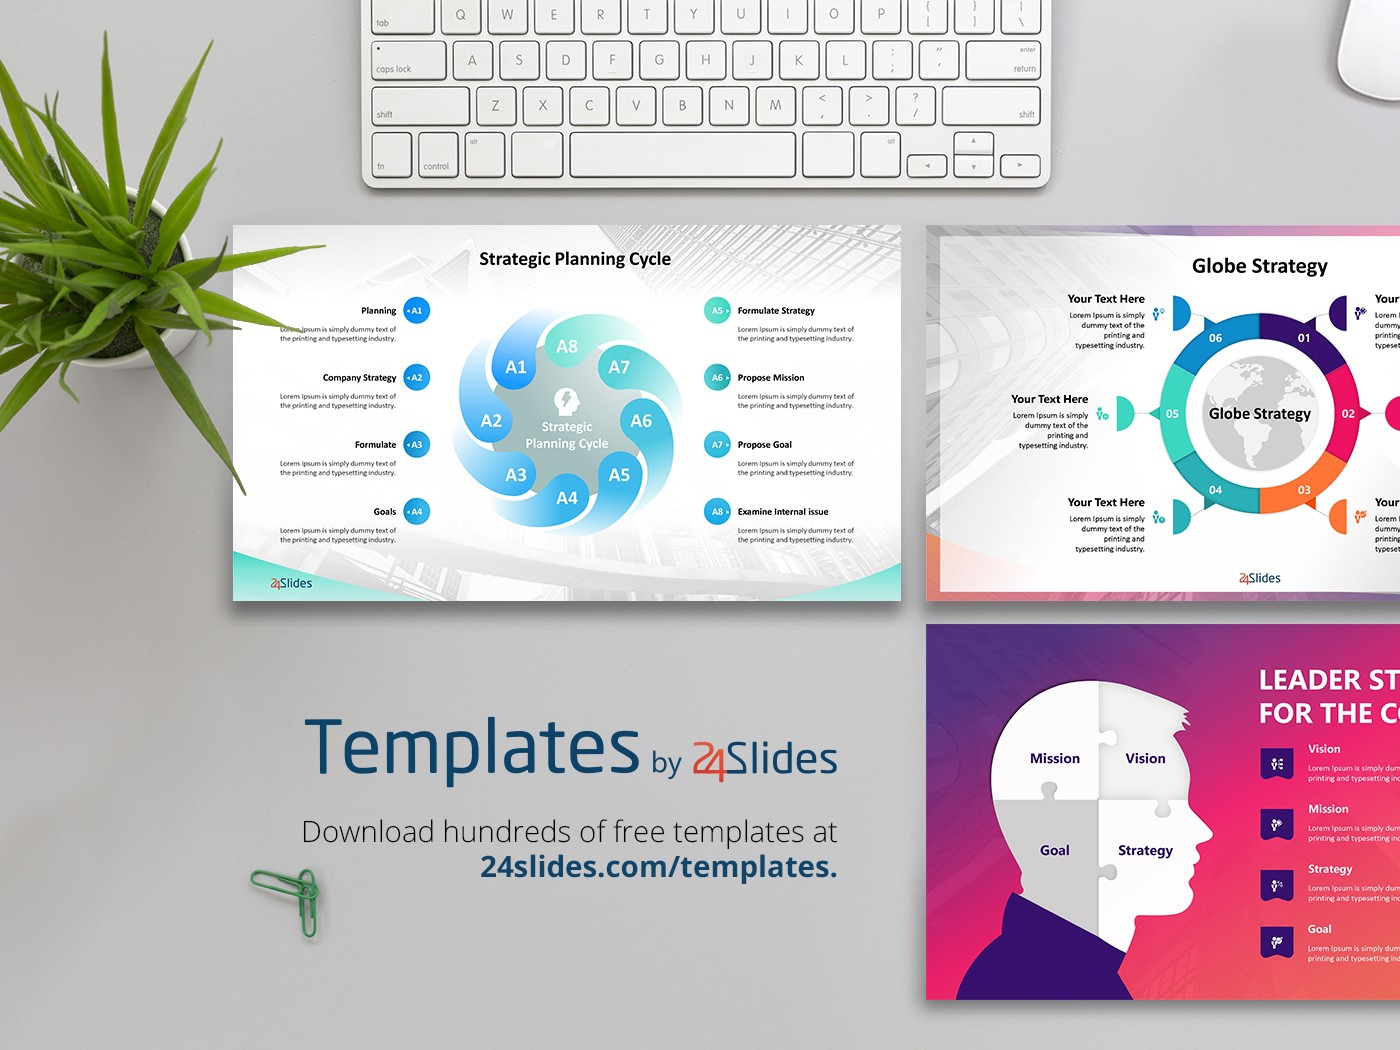 management strategy presentation template | free download, Strategy Presentation Templates Free, Powerpoint templates